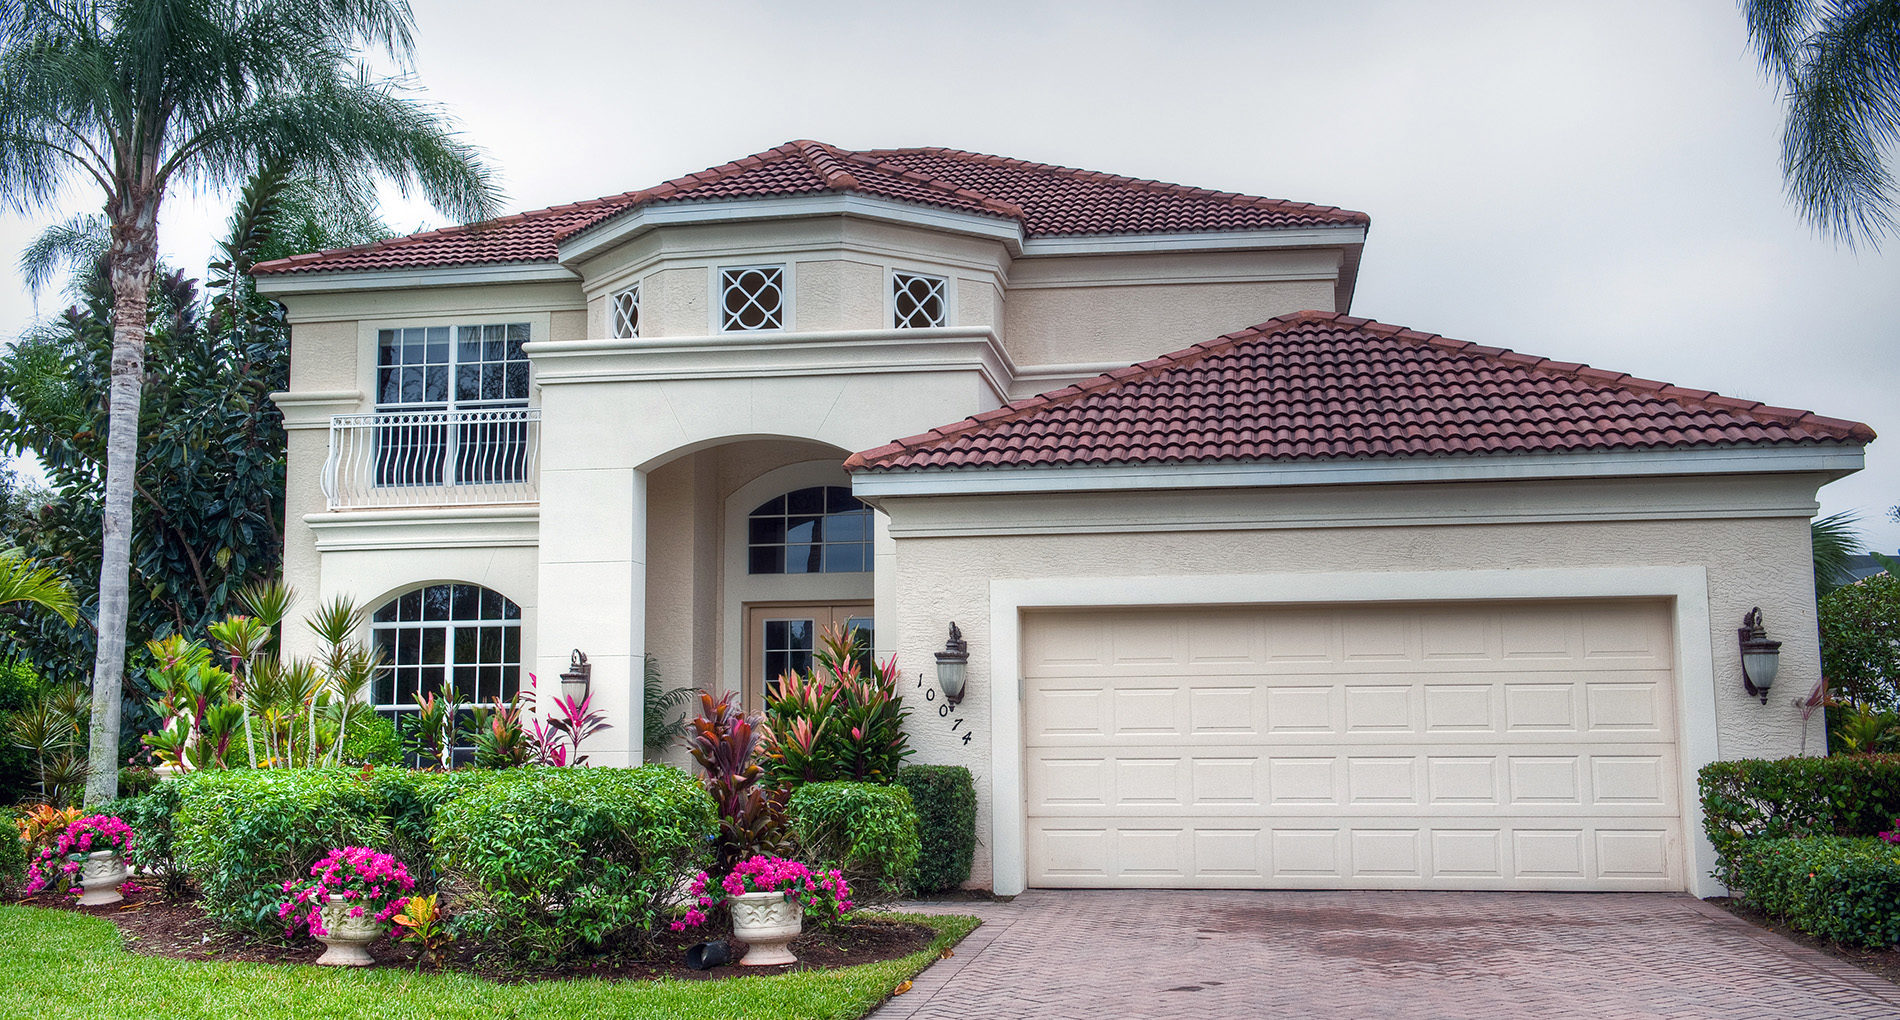 Custom Home Southtampa Miromartraditional Slider